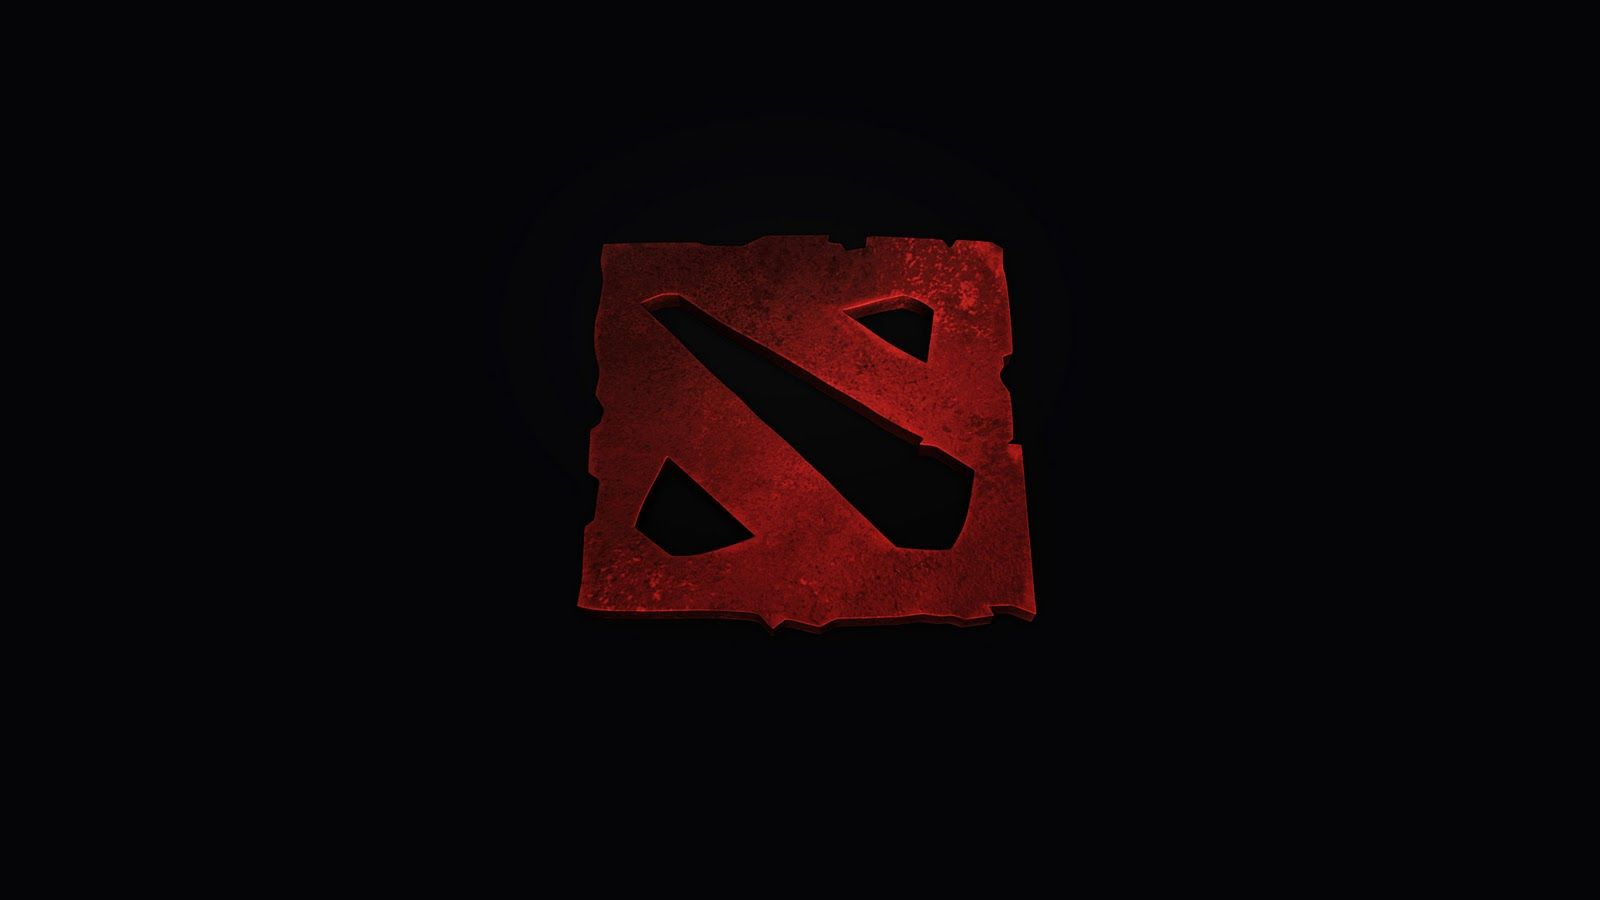 Dota 2 Epic Division 1 Preview